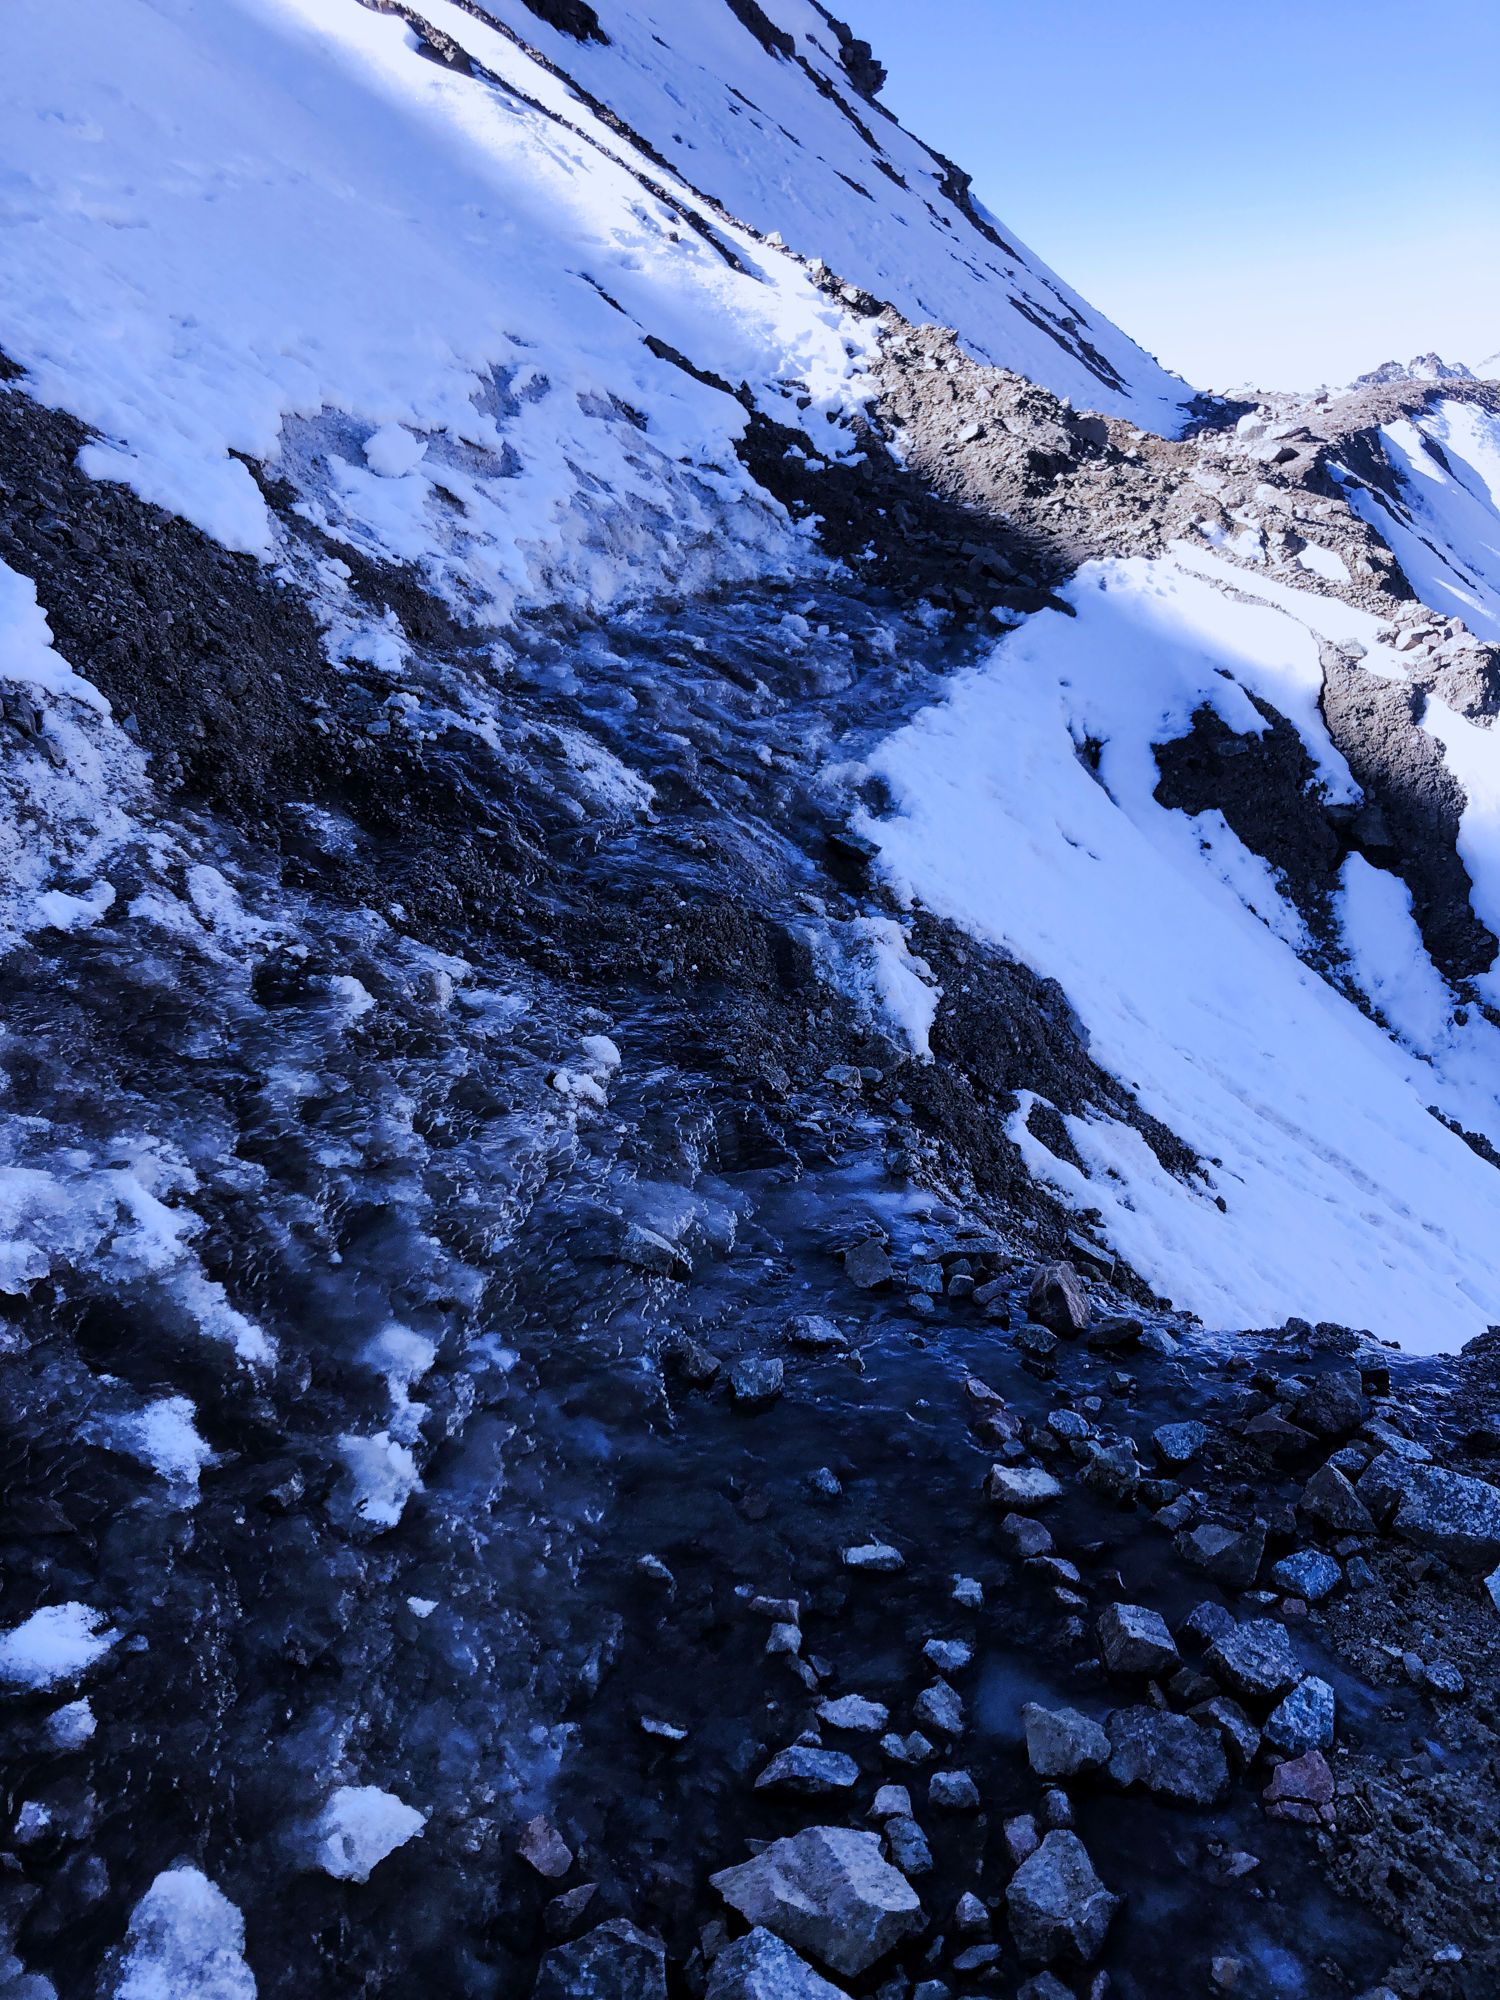 Icy section on Tong Pass.